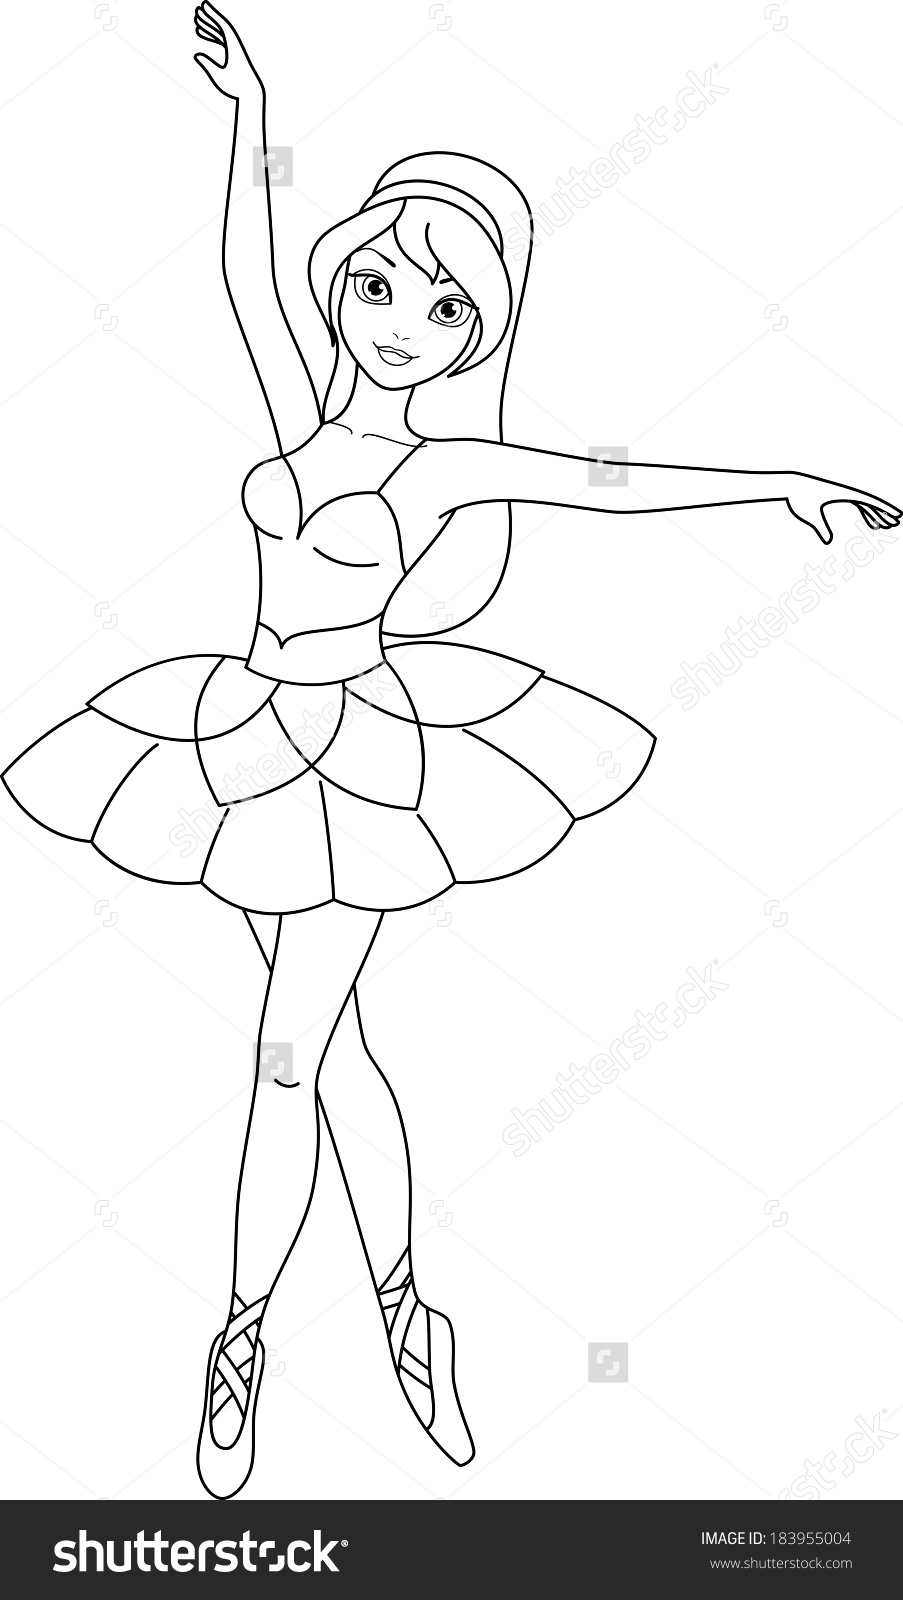 903x1600 Unusual Ballerina Colouring Pictures Ballet Co